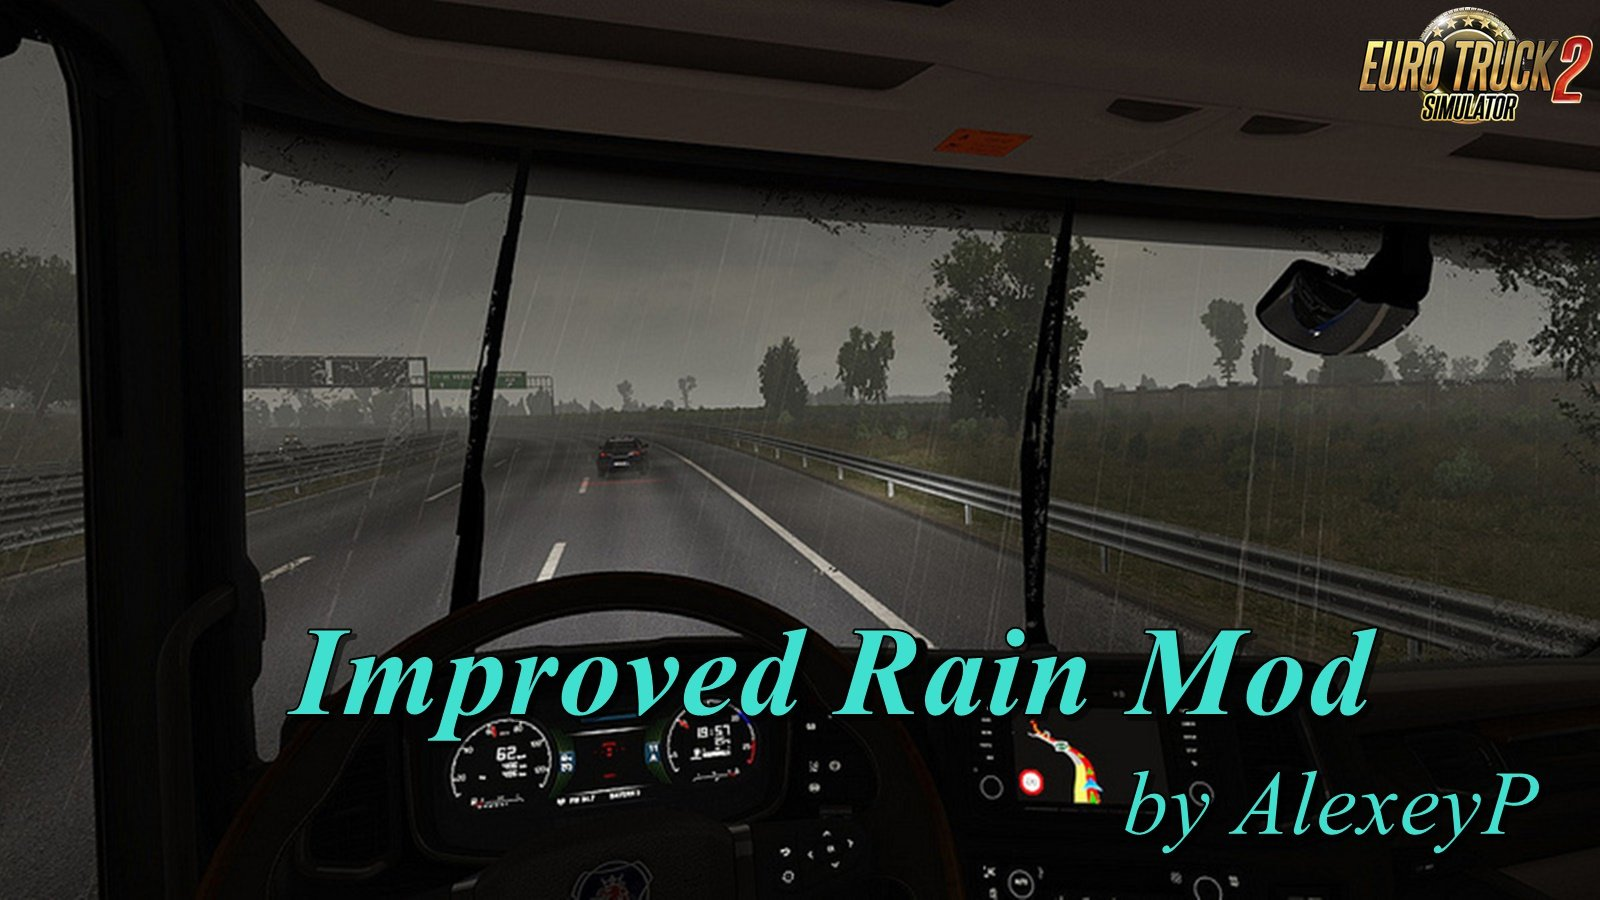 Improved rain mod v1.1 [1.33.x]